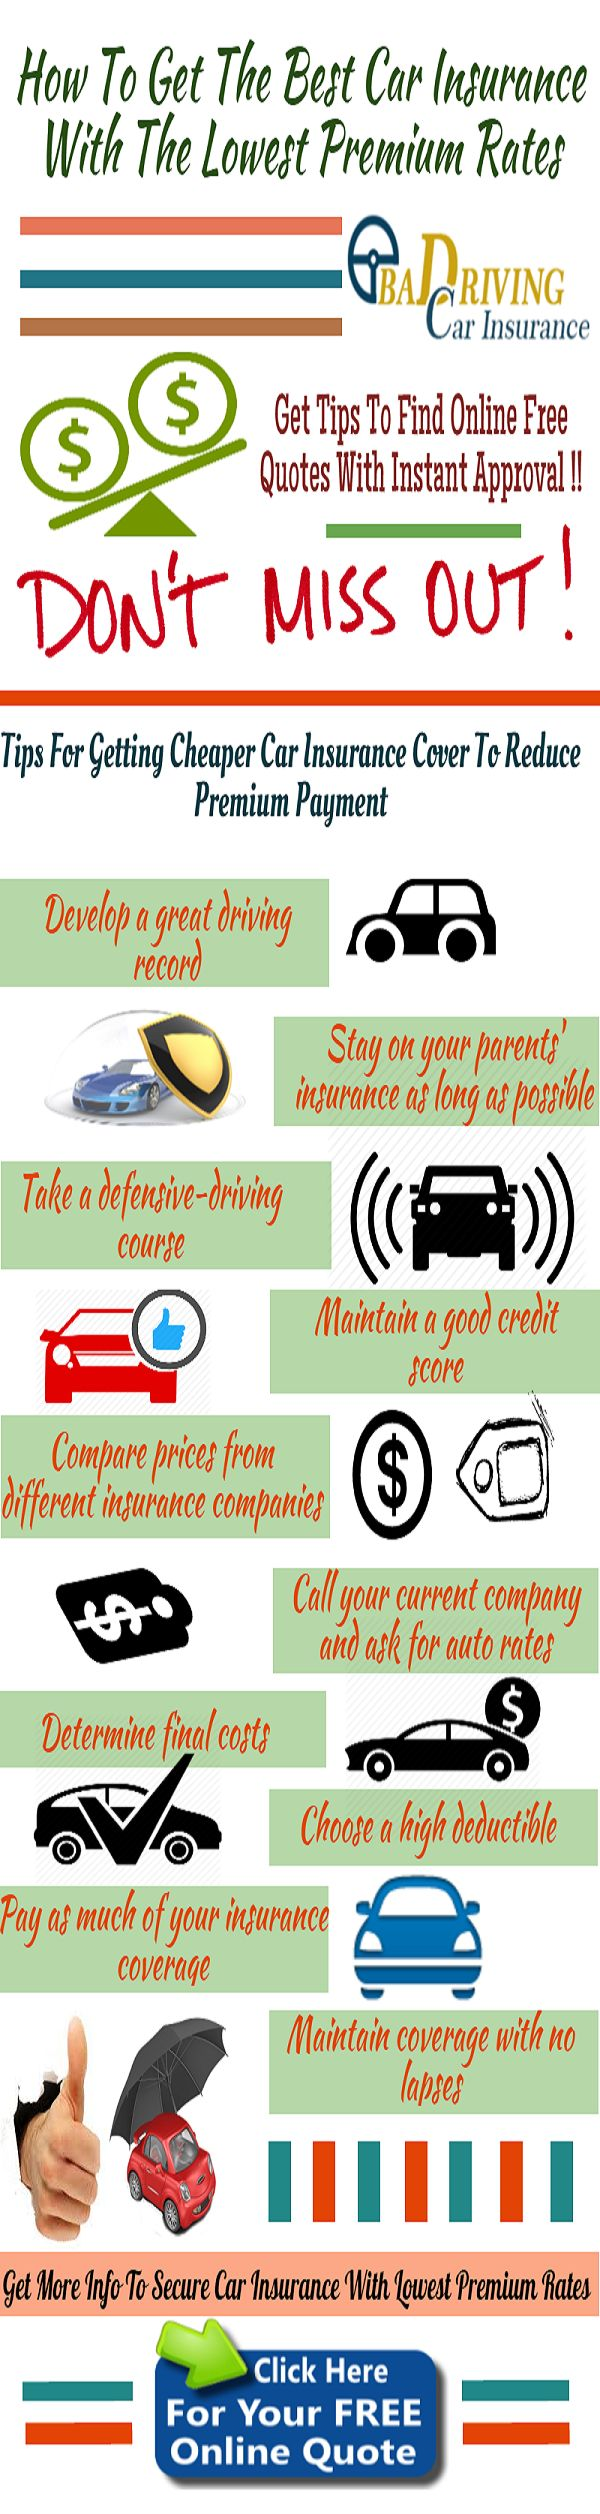 Car Insurance Free Quote Extraordinary 9 Best Carauto Insurance Infographic Images On Pinterest